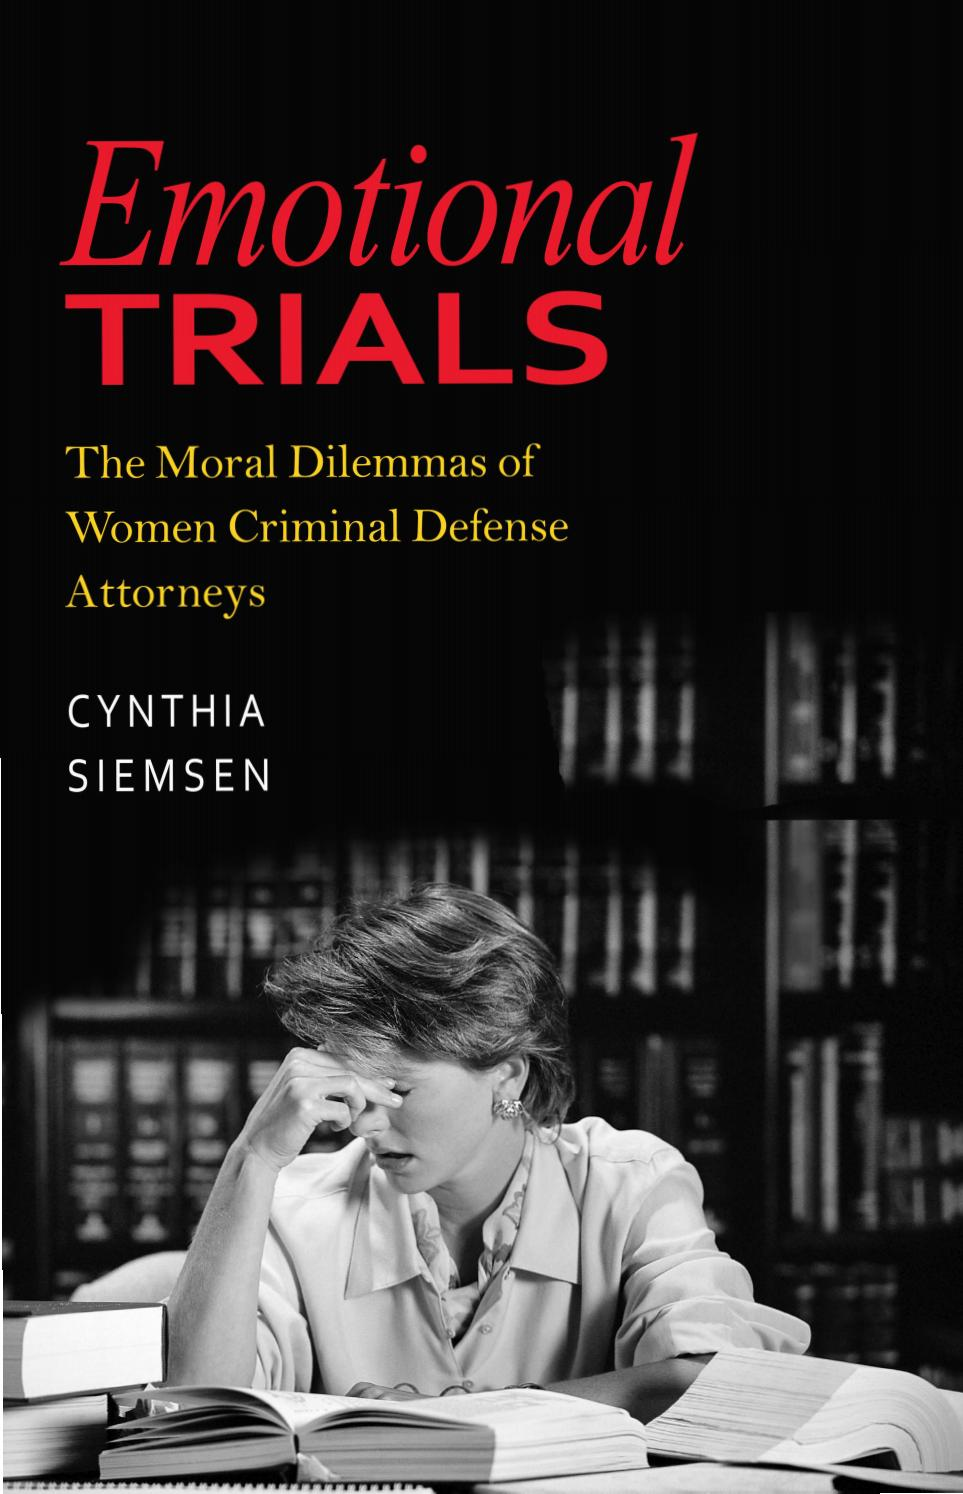 a warm place to call home by michael siemsen reviews a place called home book Emotional Trials: The Moral Dilemmas of Women Criminal Defense Attorneys by  Northeastern University Library - issuu